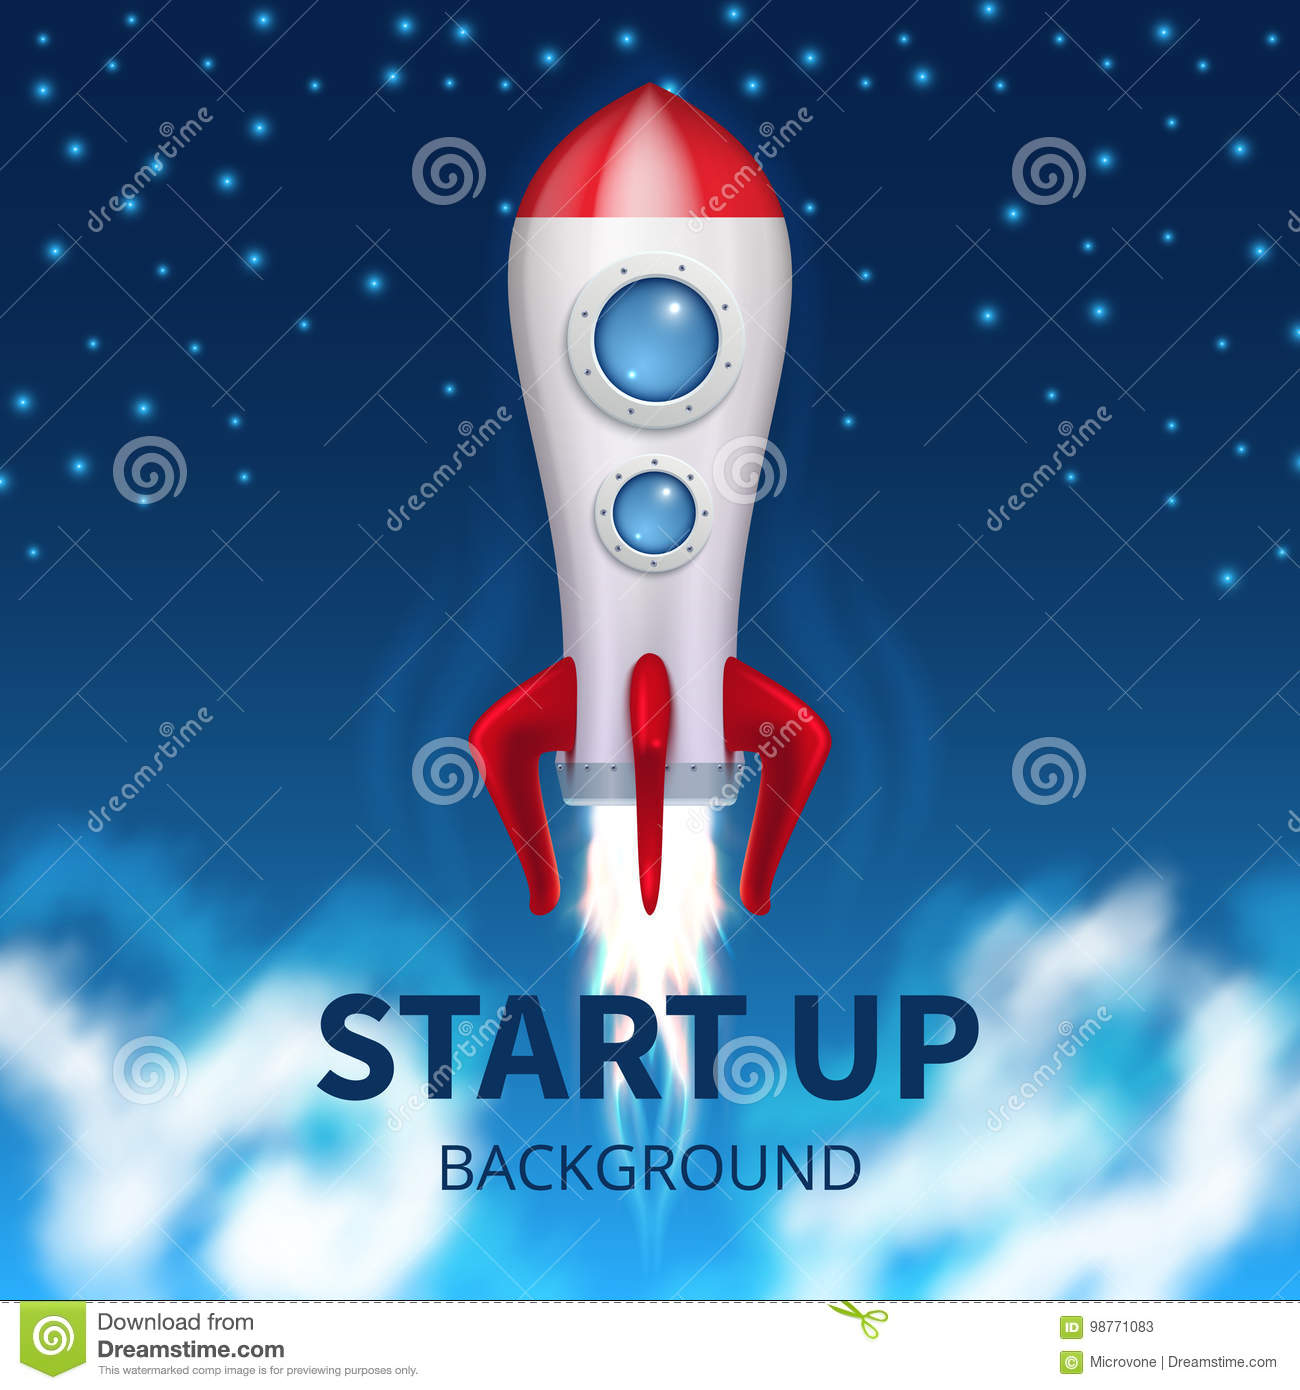 Fired up space rocket, retro booster. Shuttle launch creative startup vector background